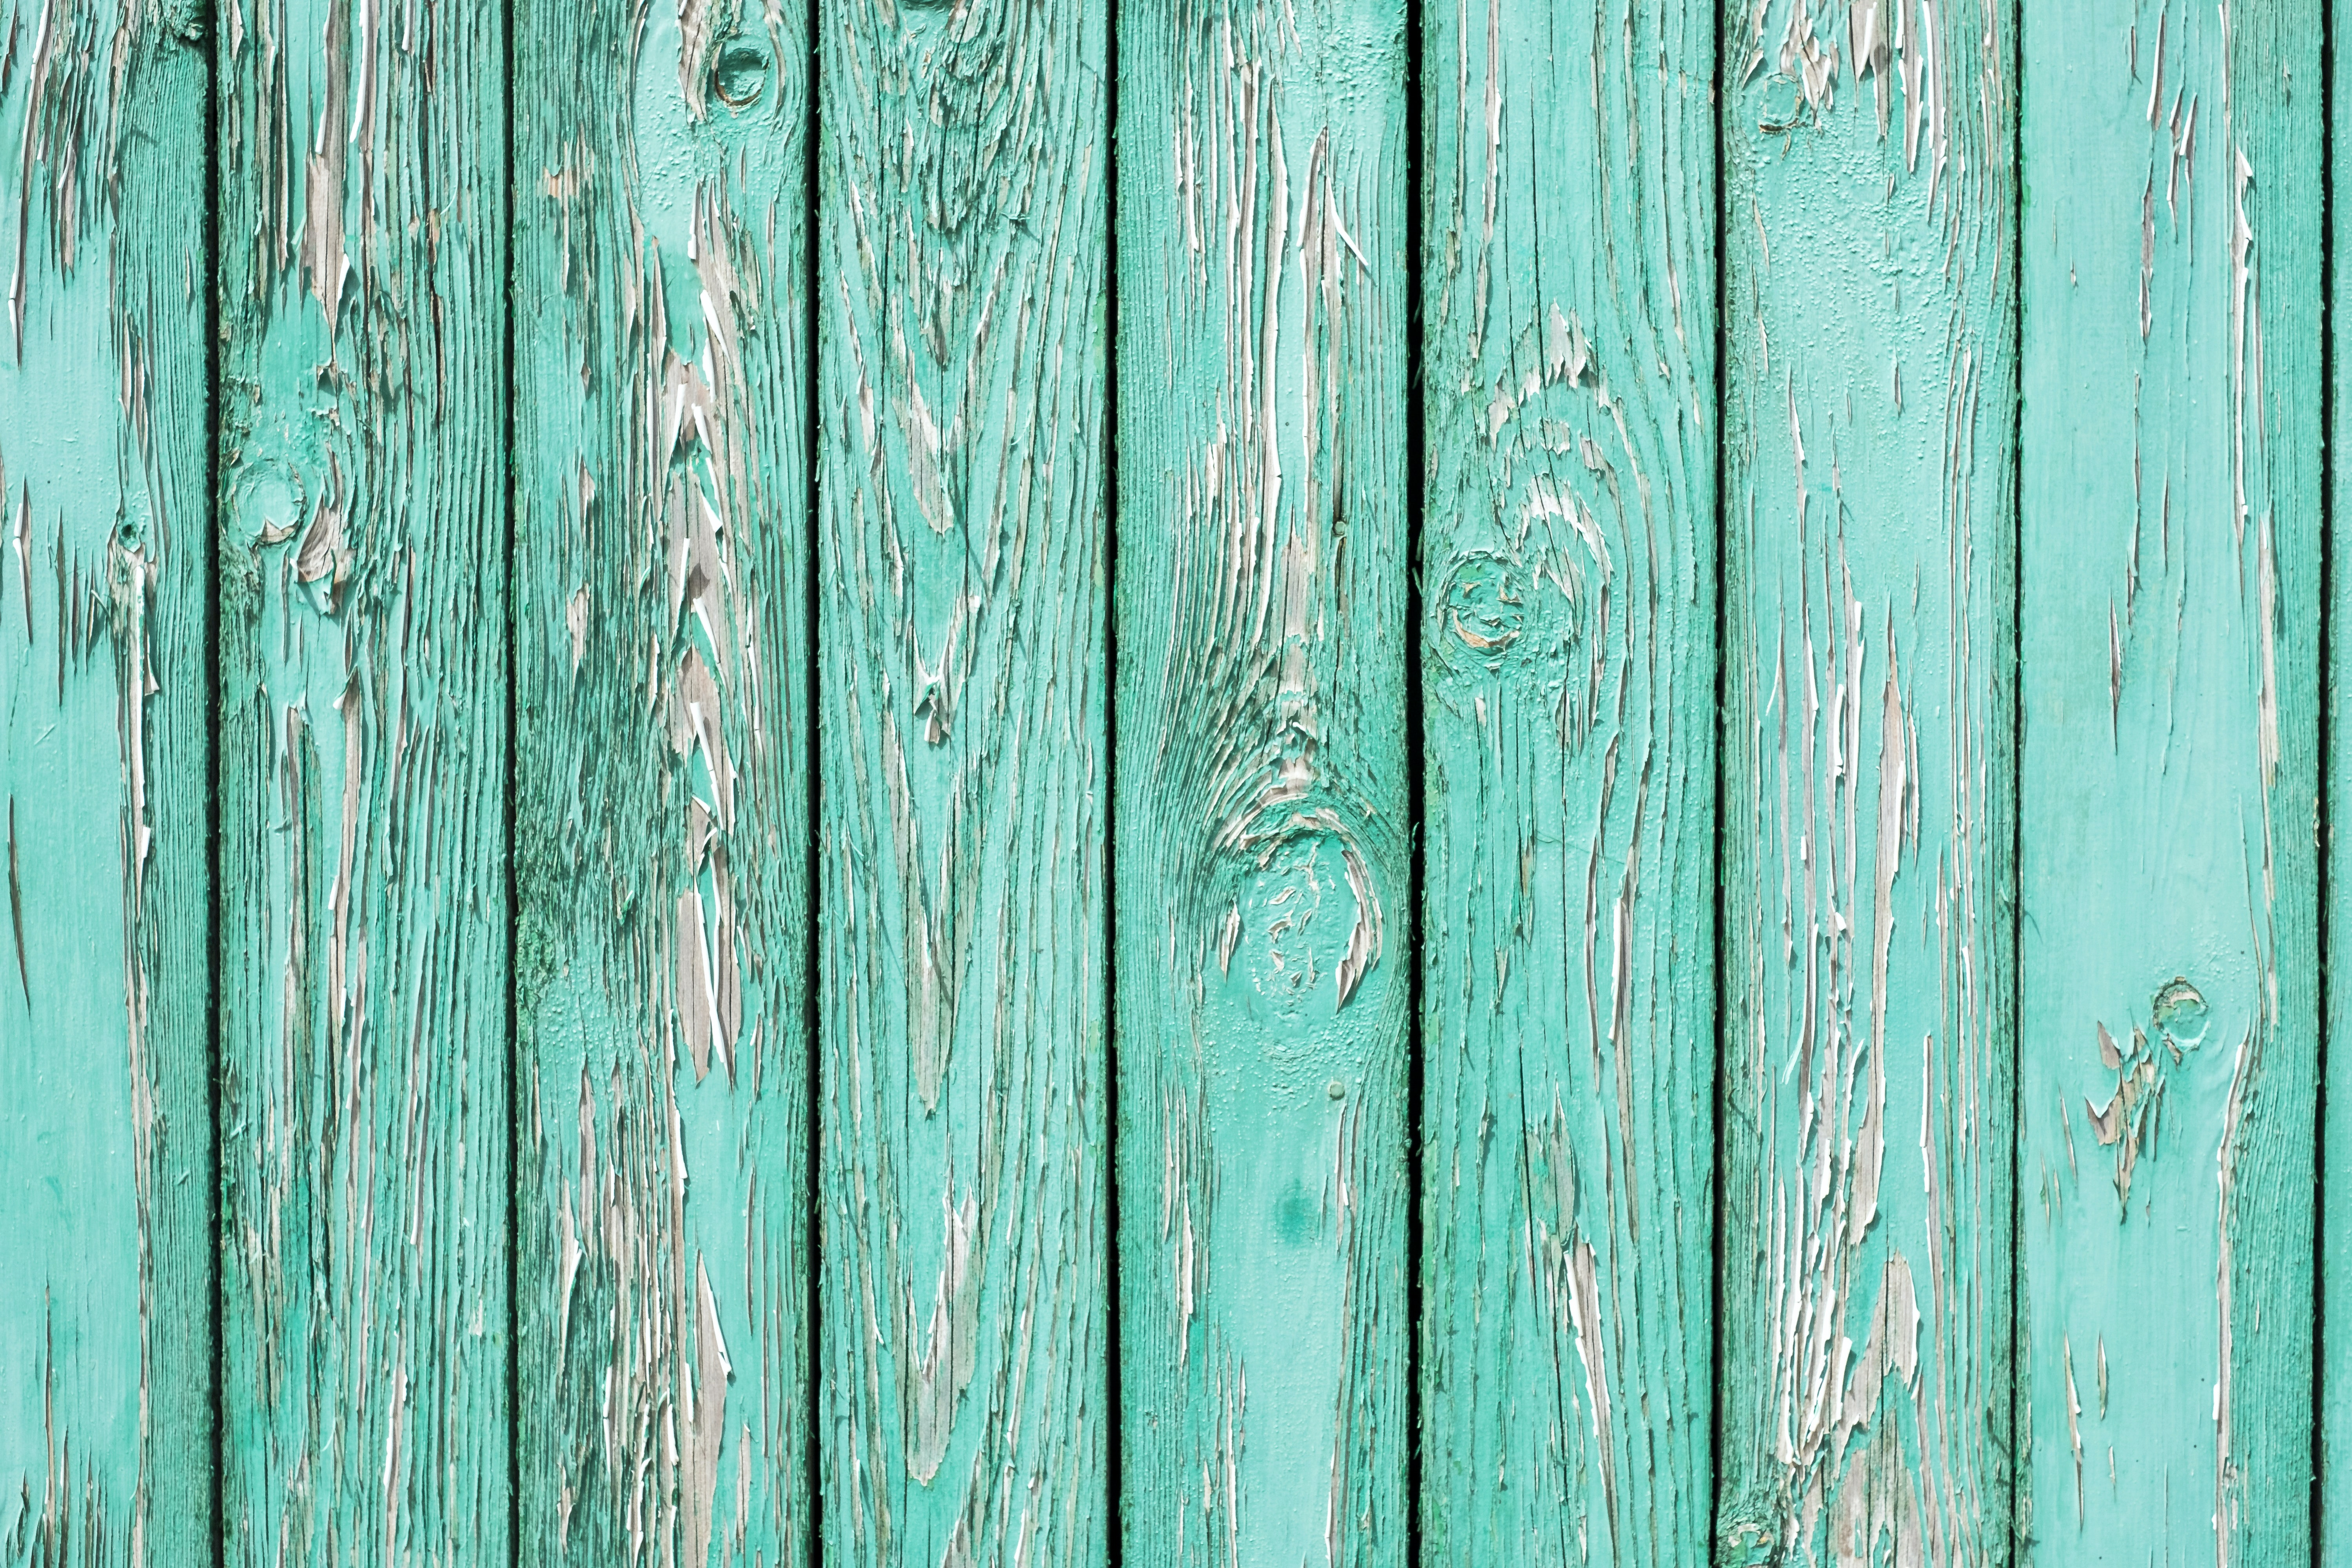 An old wooden wall painted turquoise